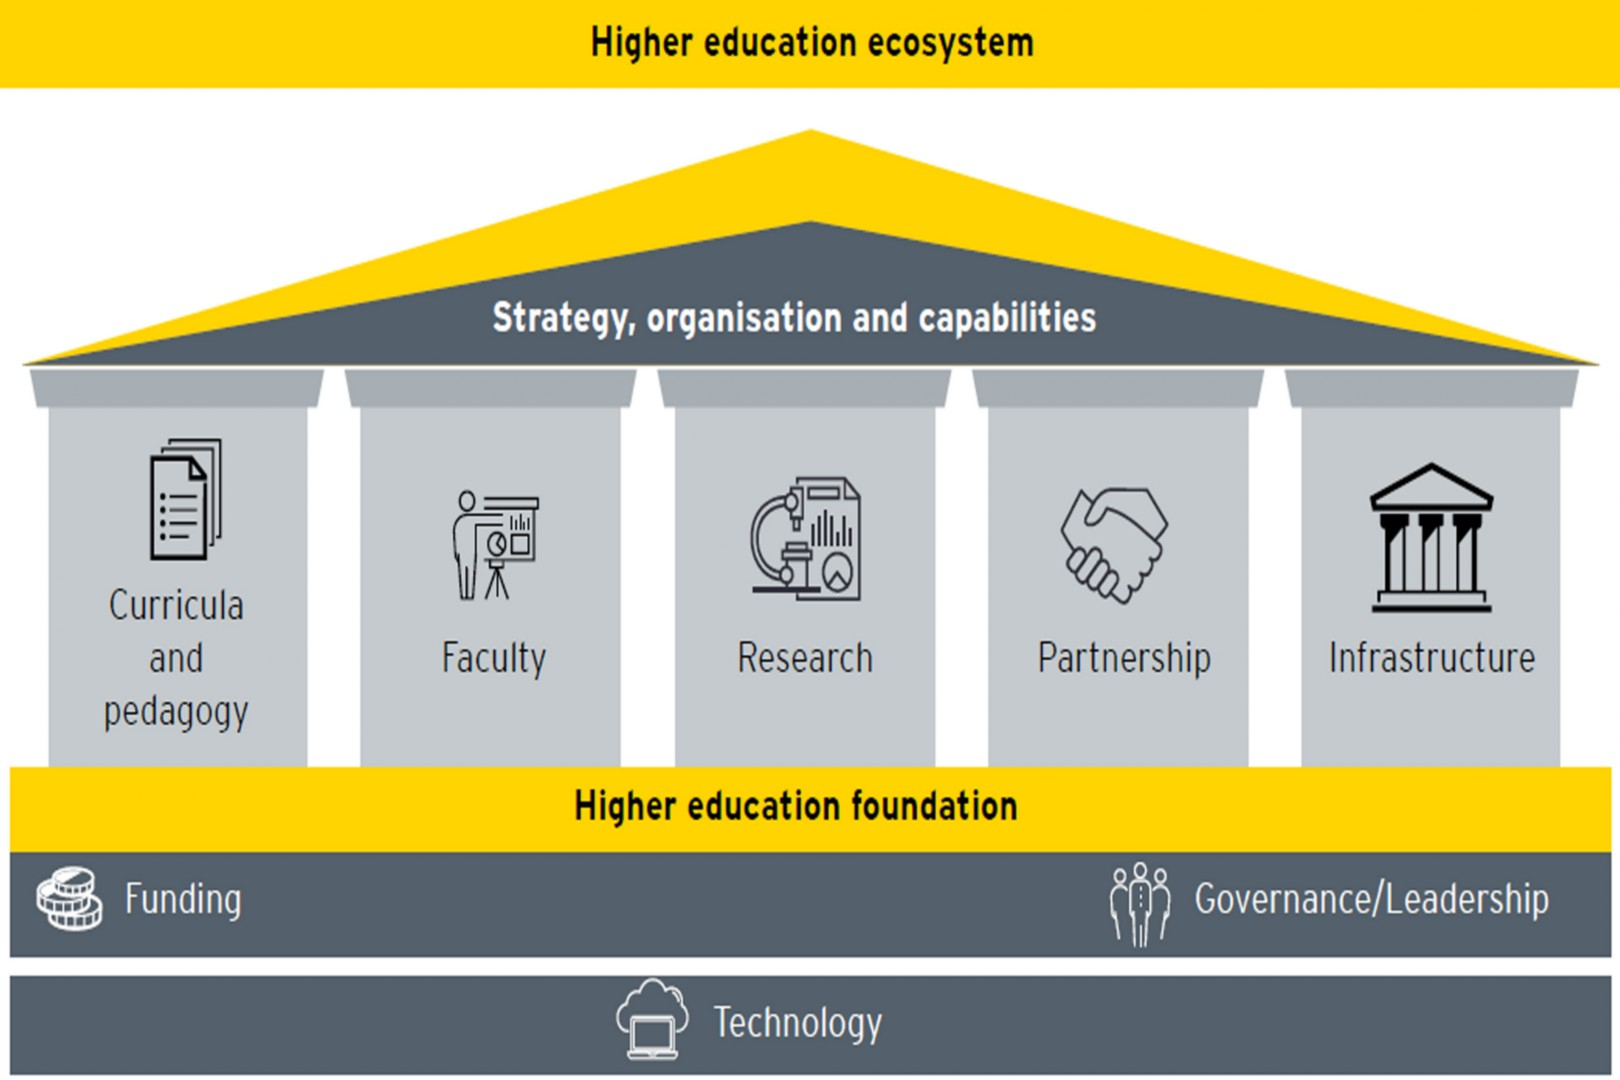 Education system in 2040: Outcome of rapid evolution and rollout of the NEP